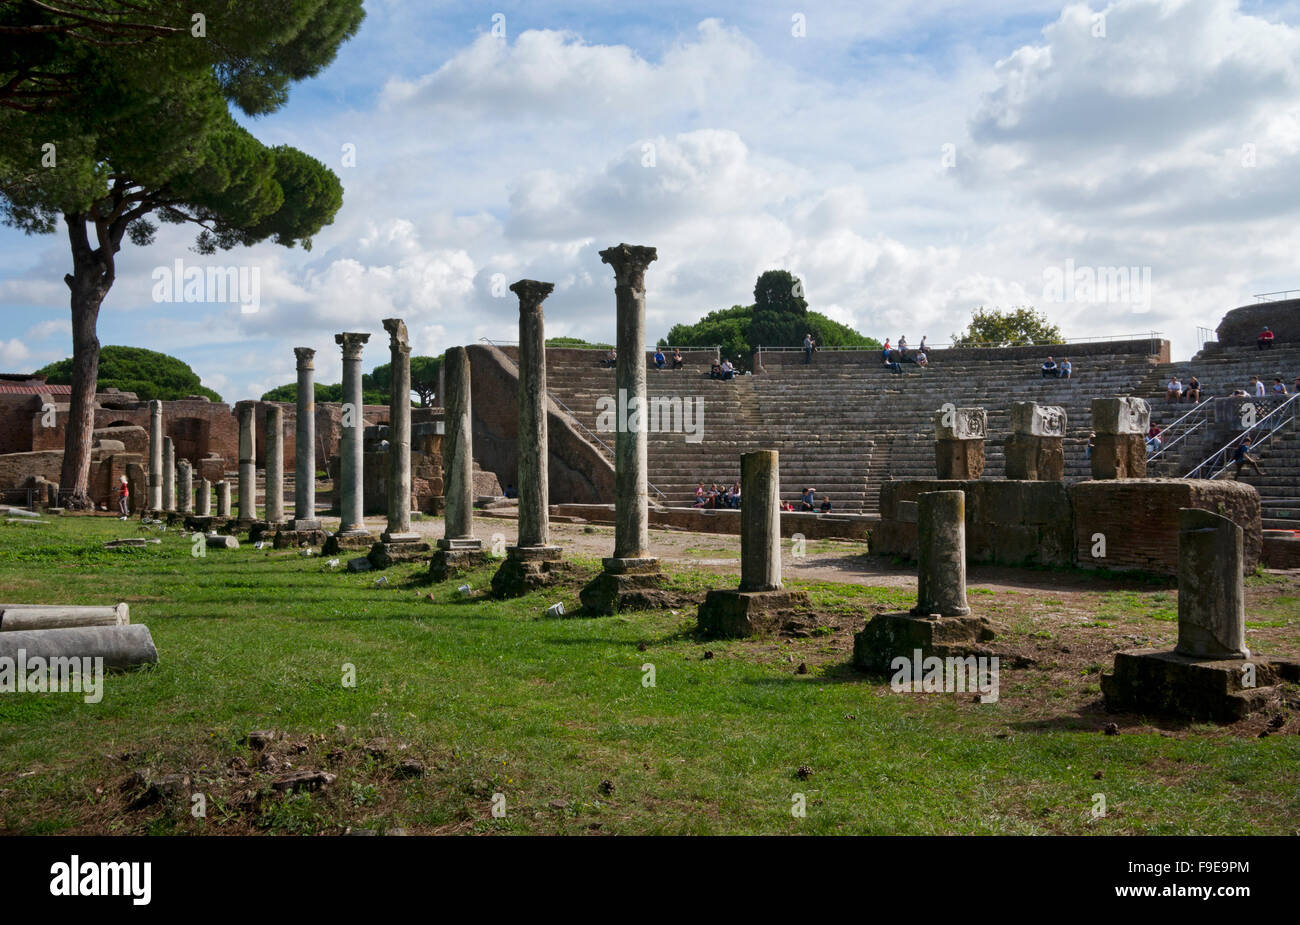 Theatre of Orchestra and Scaena in Ancient Roman port city of Ostia near Rome, Italy - Stock Image